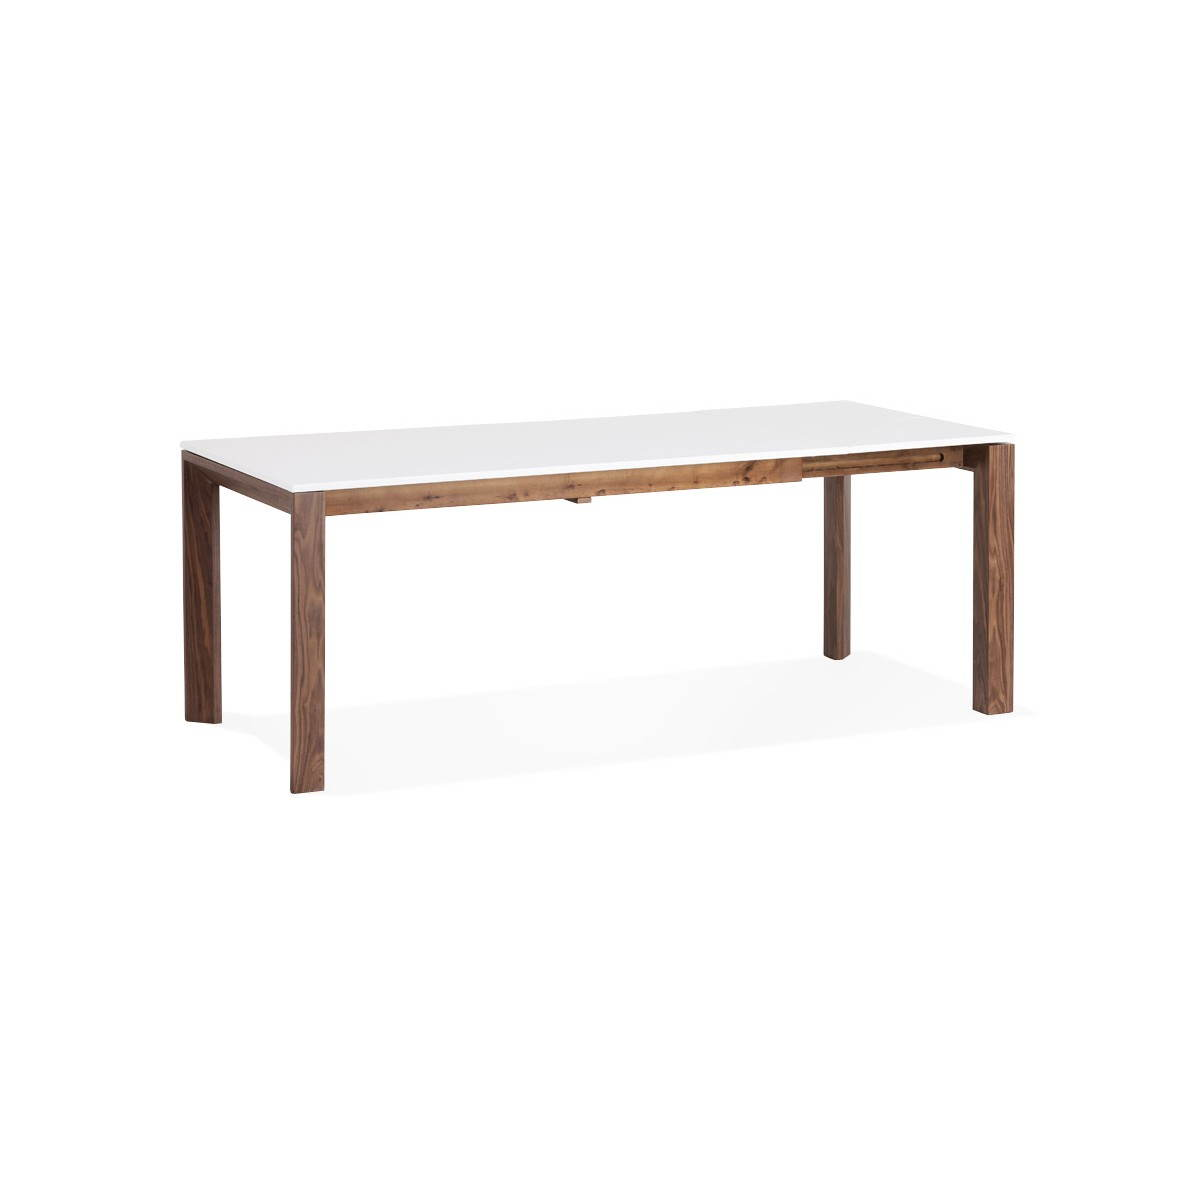 Table bois rallonge ikea - Table rectangulaire avec rallonge ikea ...